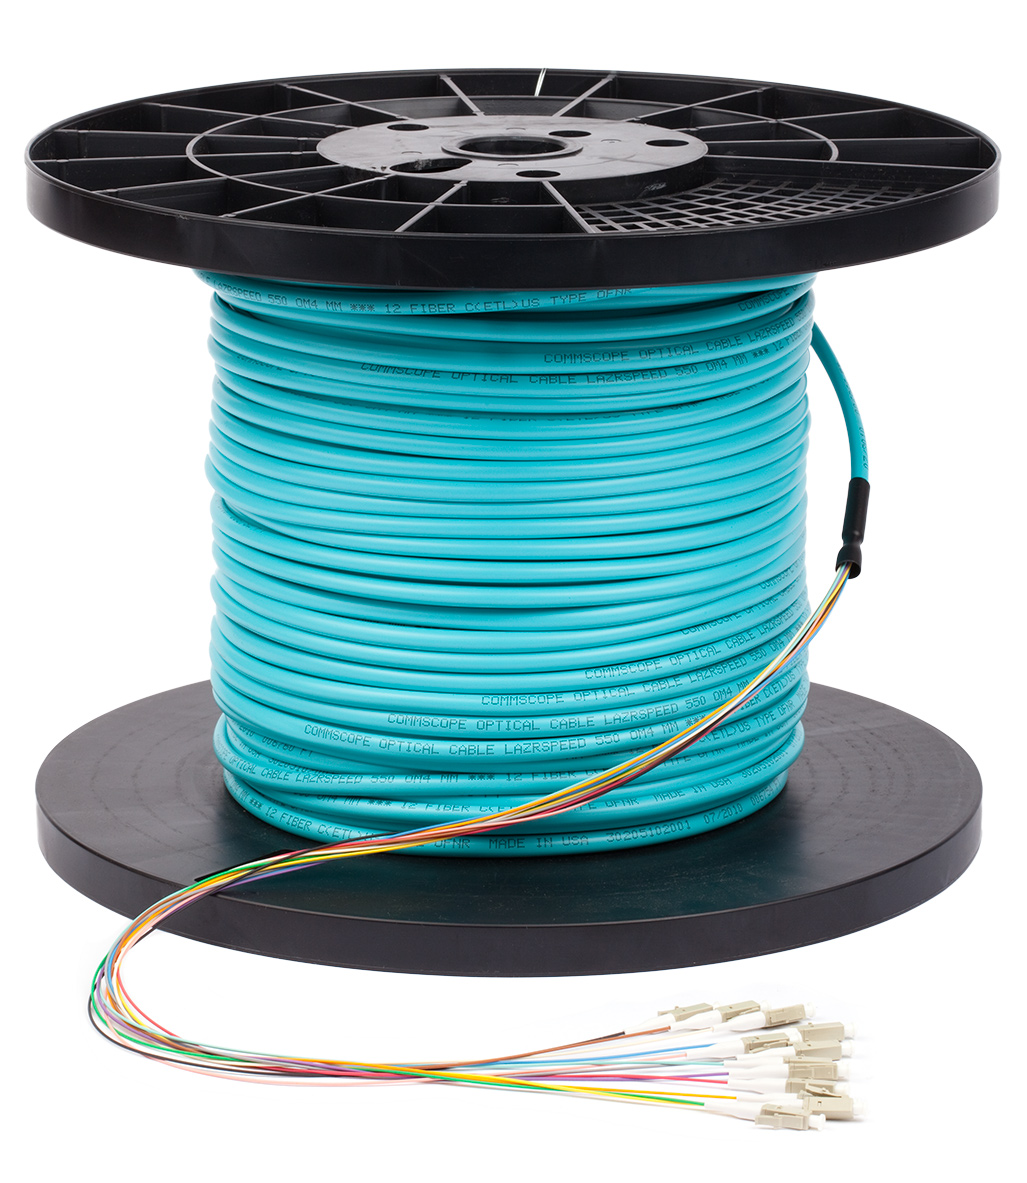 Fiber Trunk Cables Ce Communications Optic Cable Schematic Comm Has For Virtually Any Application Call Us Bulk Orders Or Custom Lengths Our Technicians Can Fit A Wide Variety Of